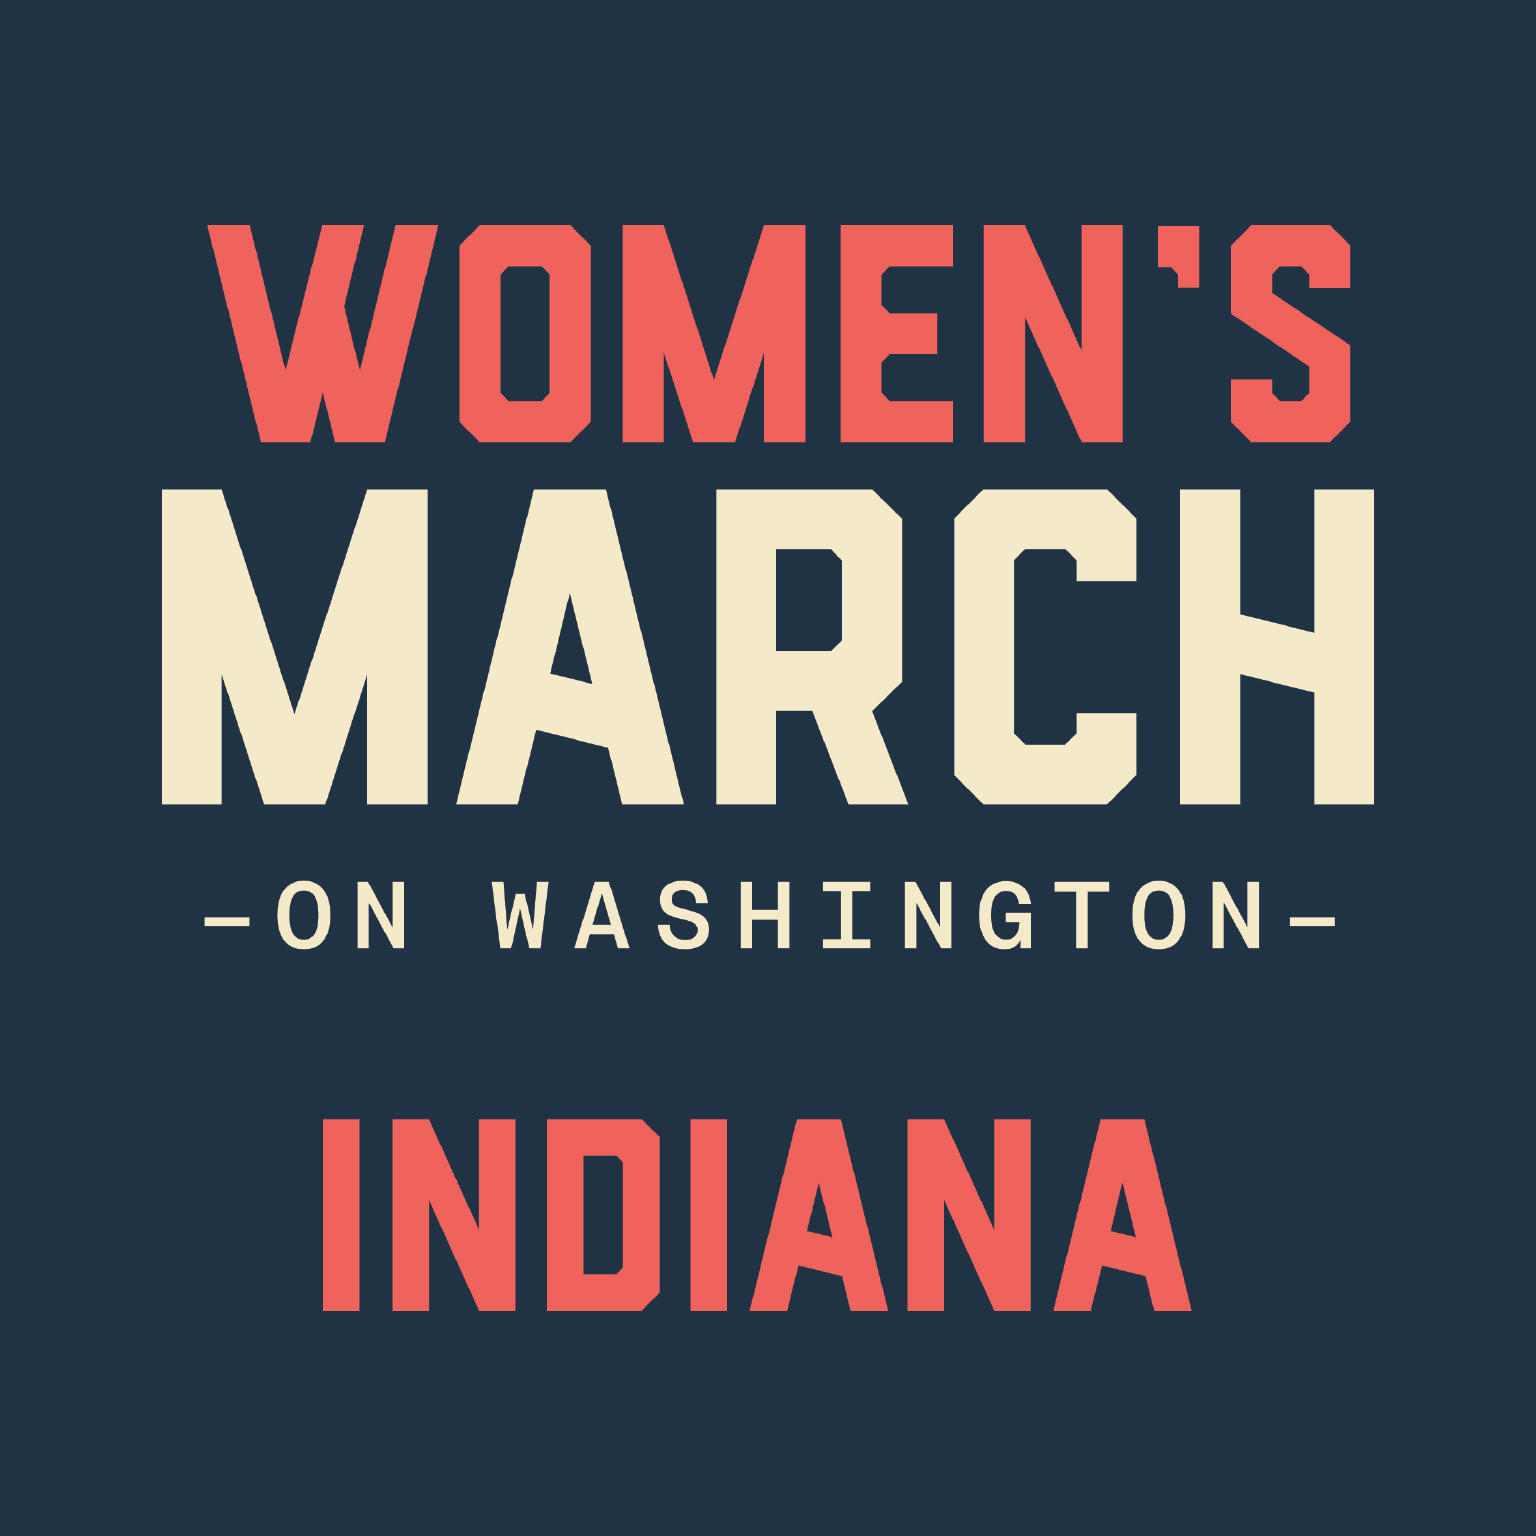 Womens_march_indiana_approved